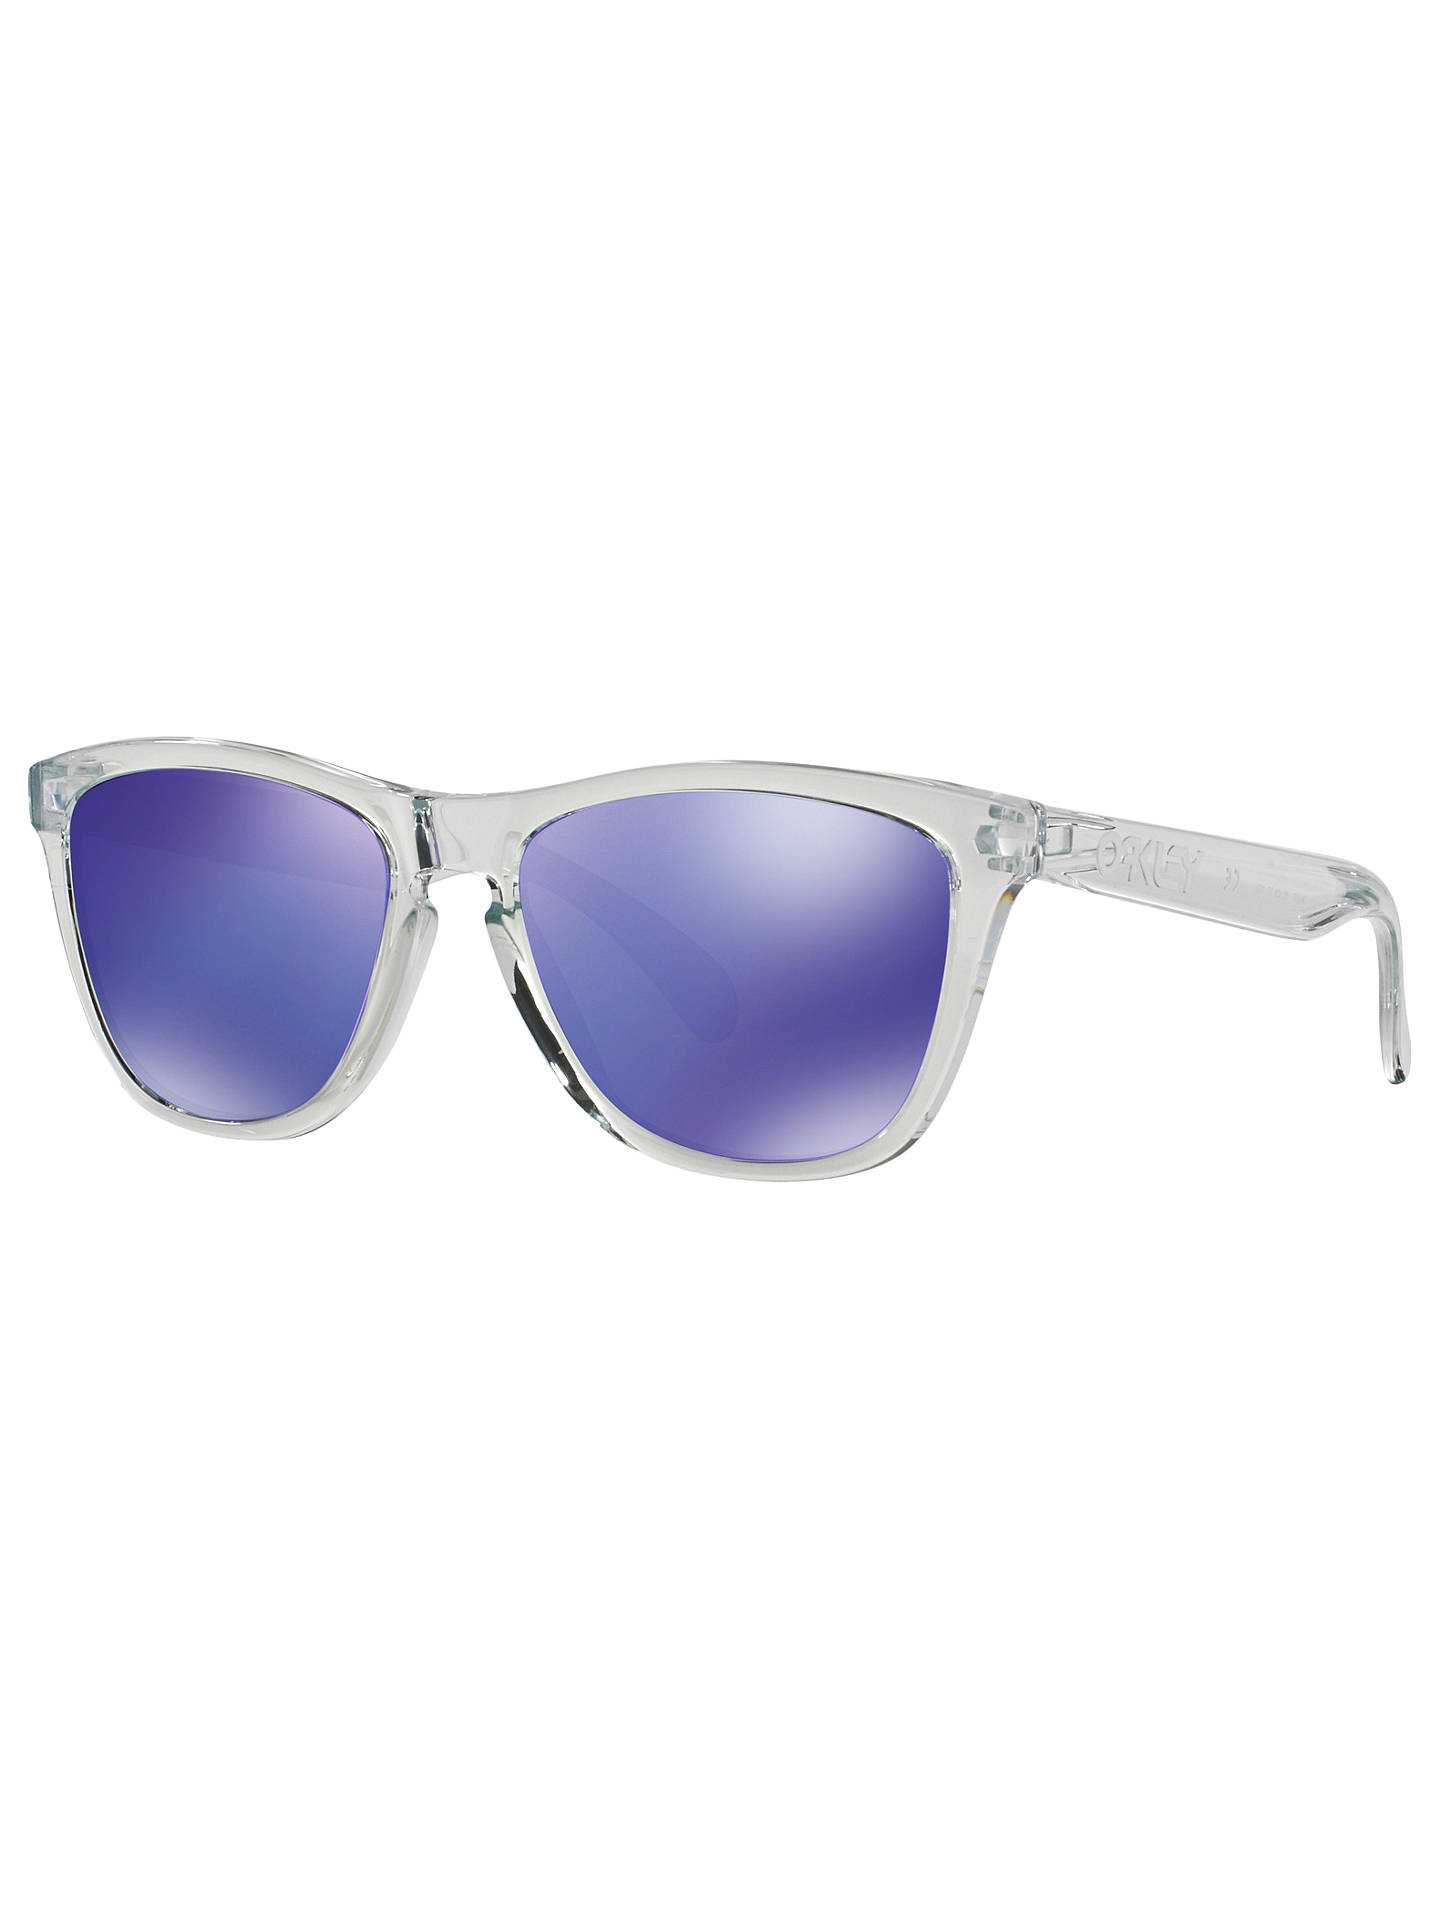 c321c6ff11 ... oo9013 frogskins square sunglasses clear online at johnlewis c00bb  d6660 low cost 10.99 fashional oakley frogskins sunglasses transparent frame  blue ...